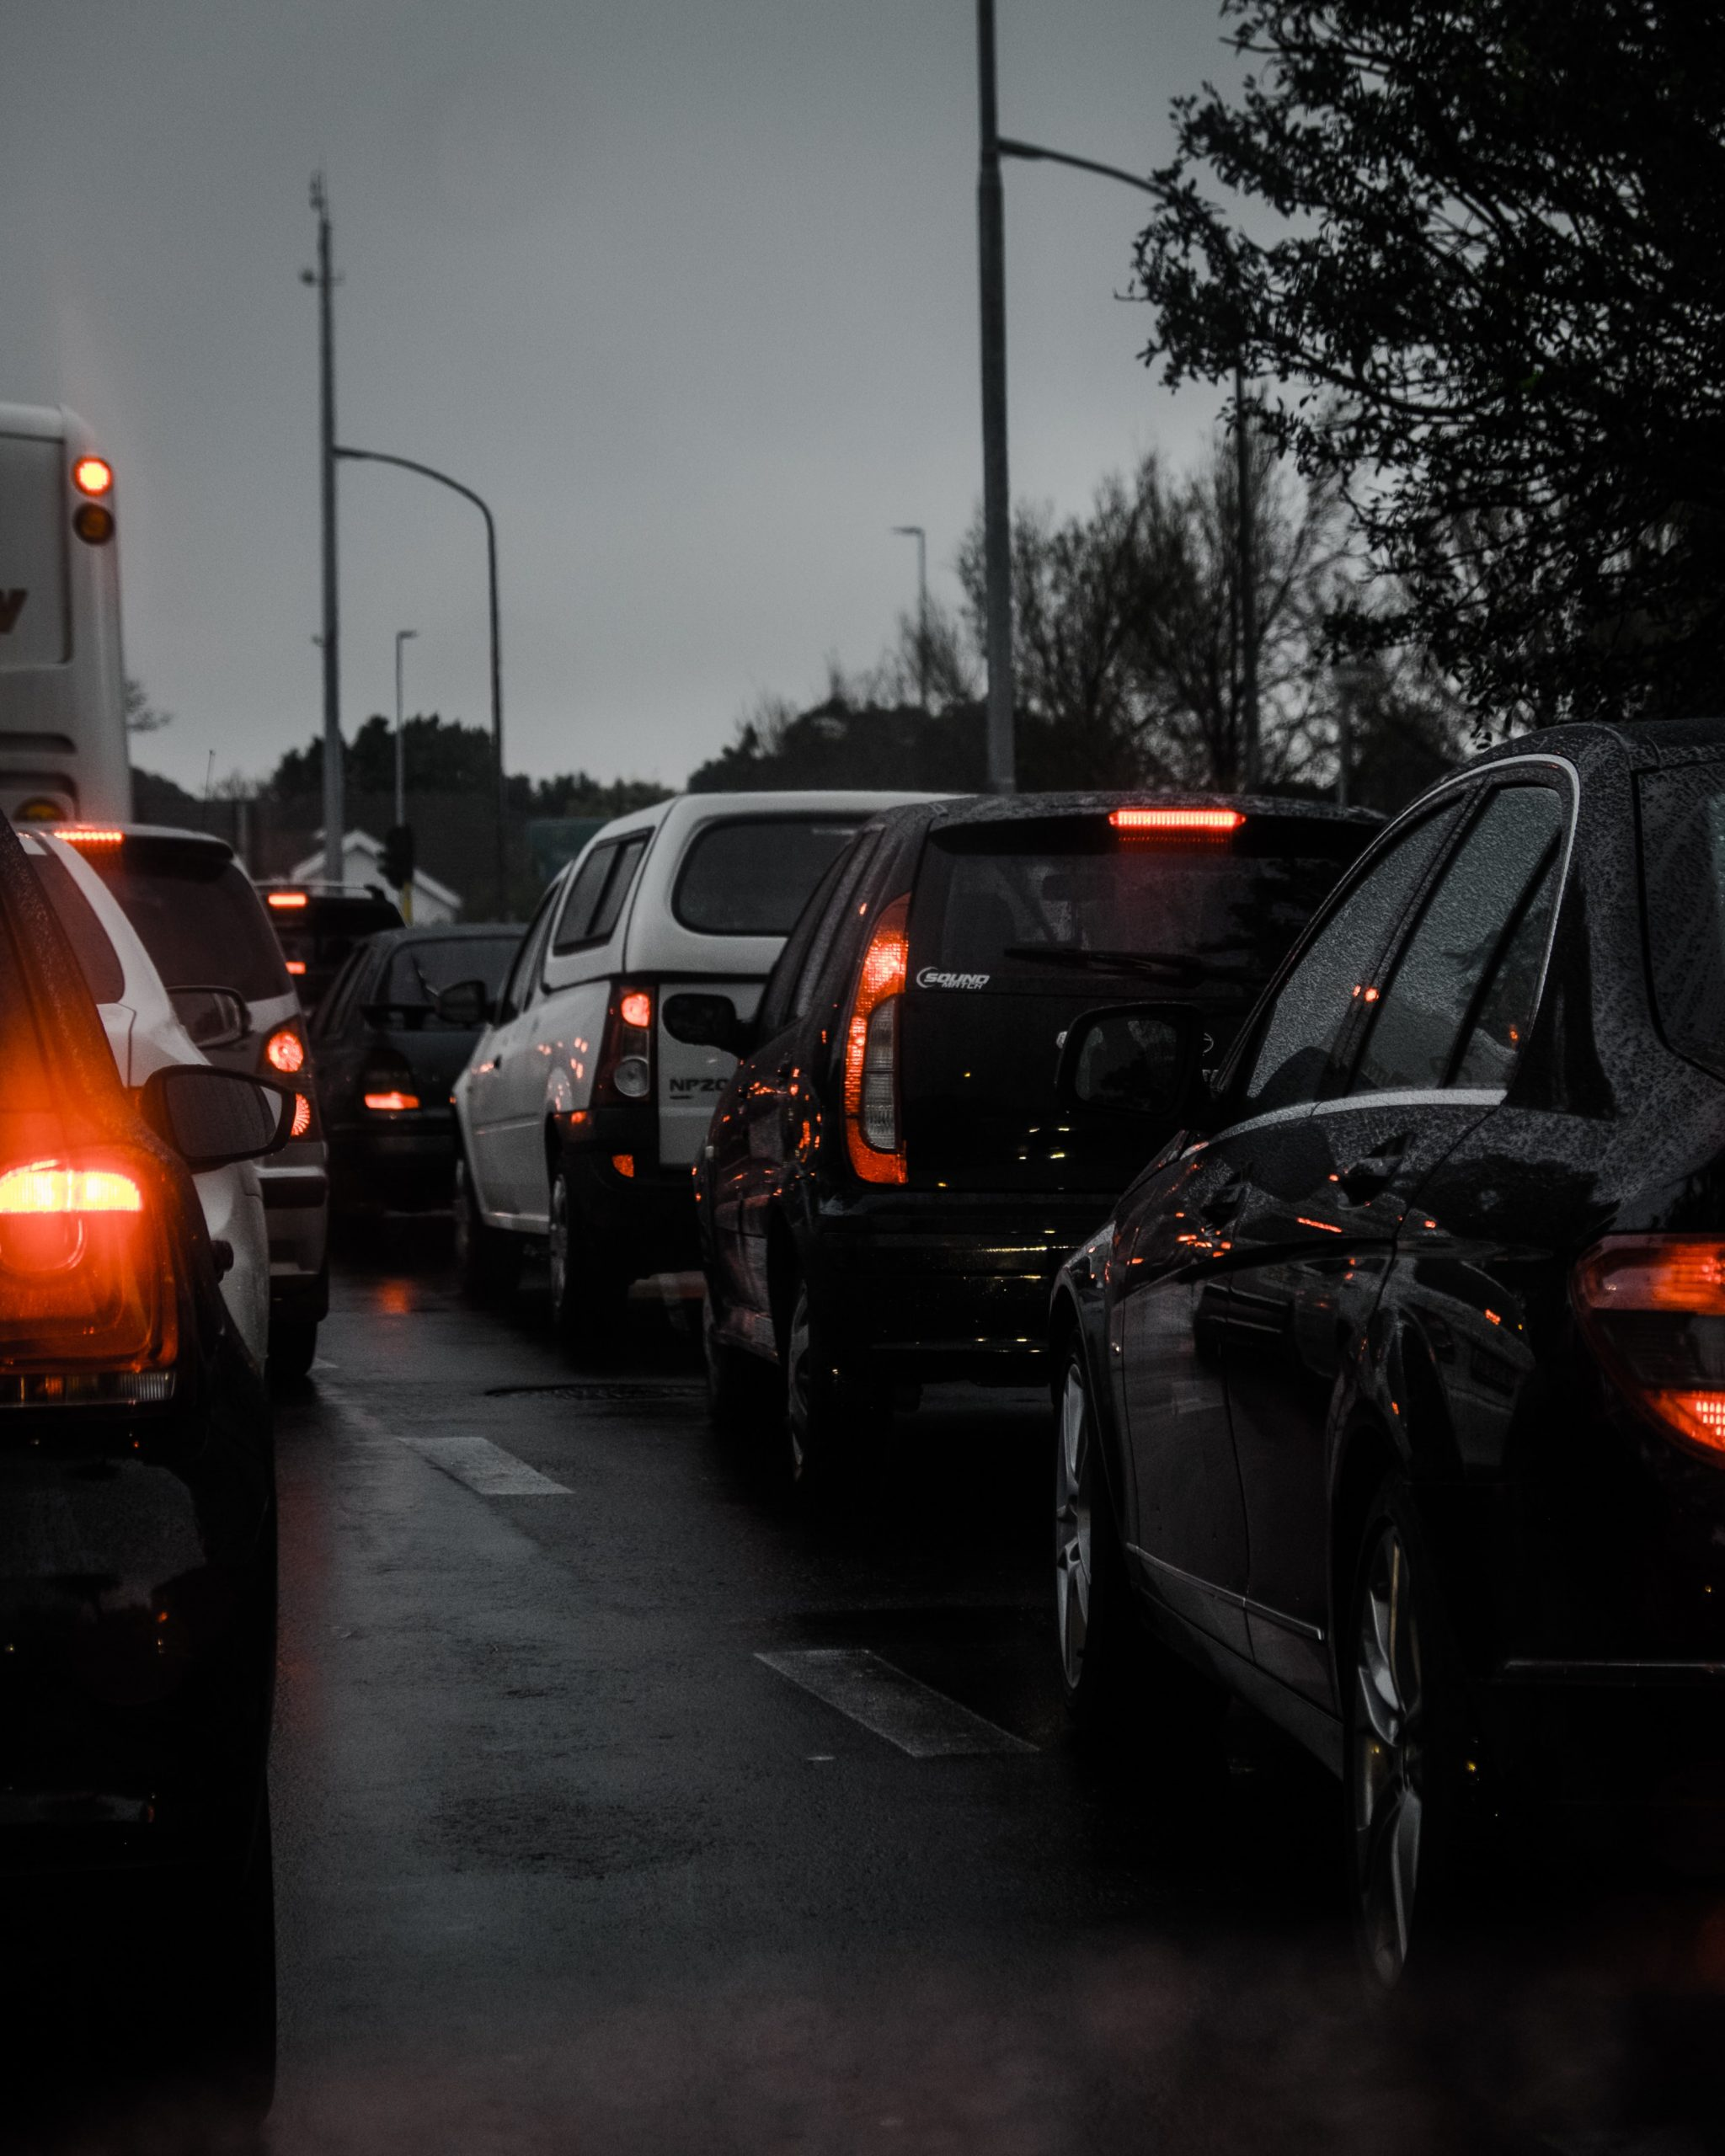 Cars are held up in traffic jams. Image showing that commuting on e-bikes does not have this problem.